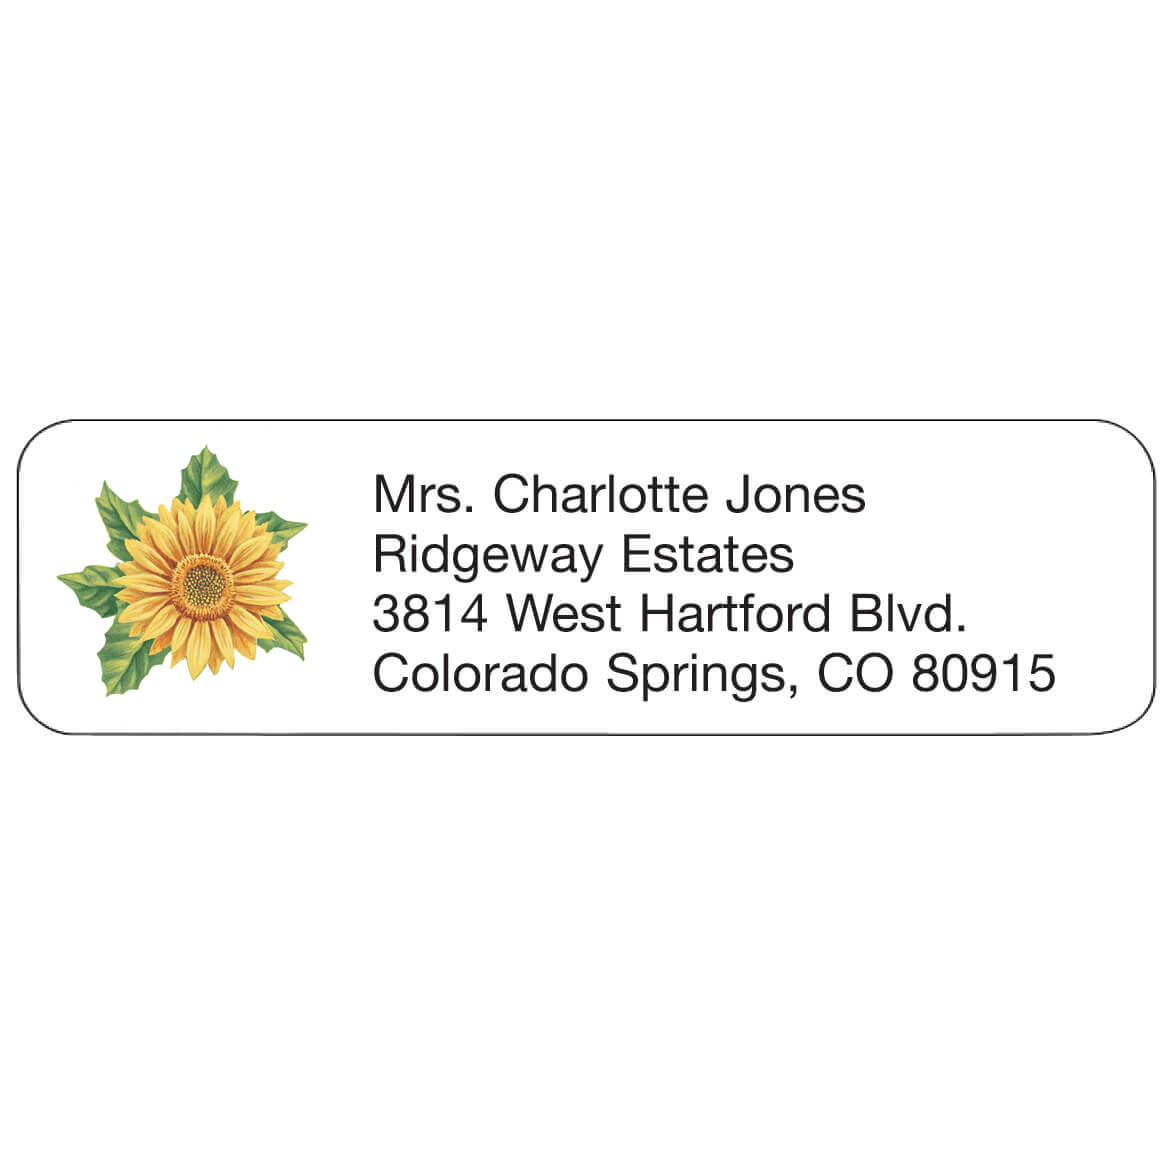 Sunflower Address Labels Sunflower address labels are delightfully designed. Address labels are self-stick and white. Labels are personalizedonalized in black. Specify up to 4 lines, 26 letters and spaces per line. Set of 200 rpersonalizedonalized return address labels; 2 1/4  x 5/8  each.